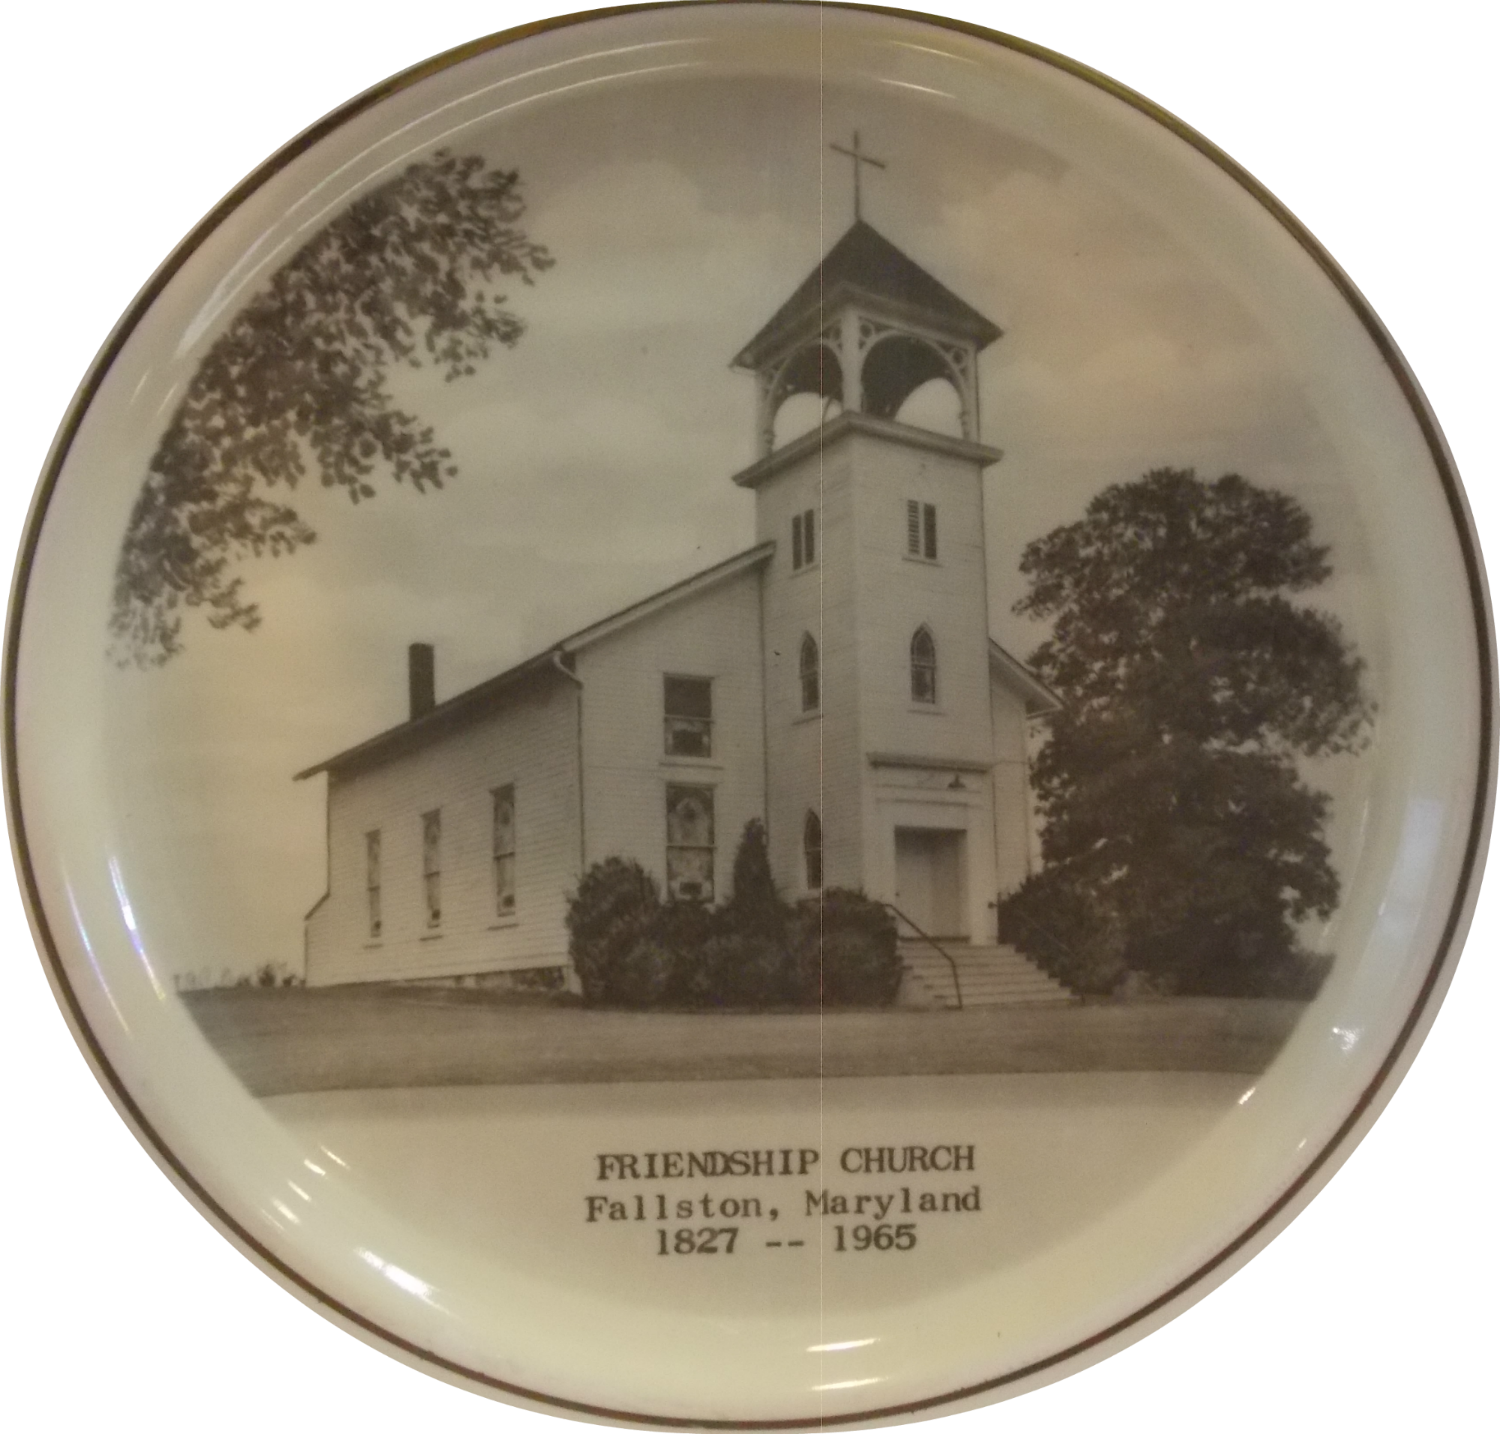 A plate with a historical picture of Friendship Church